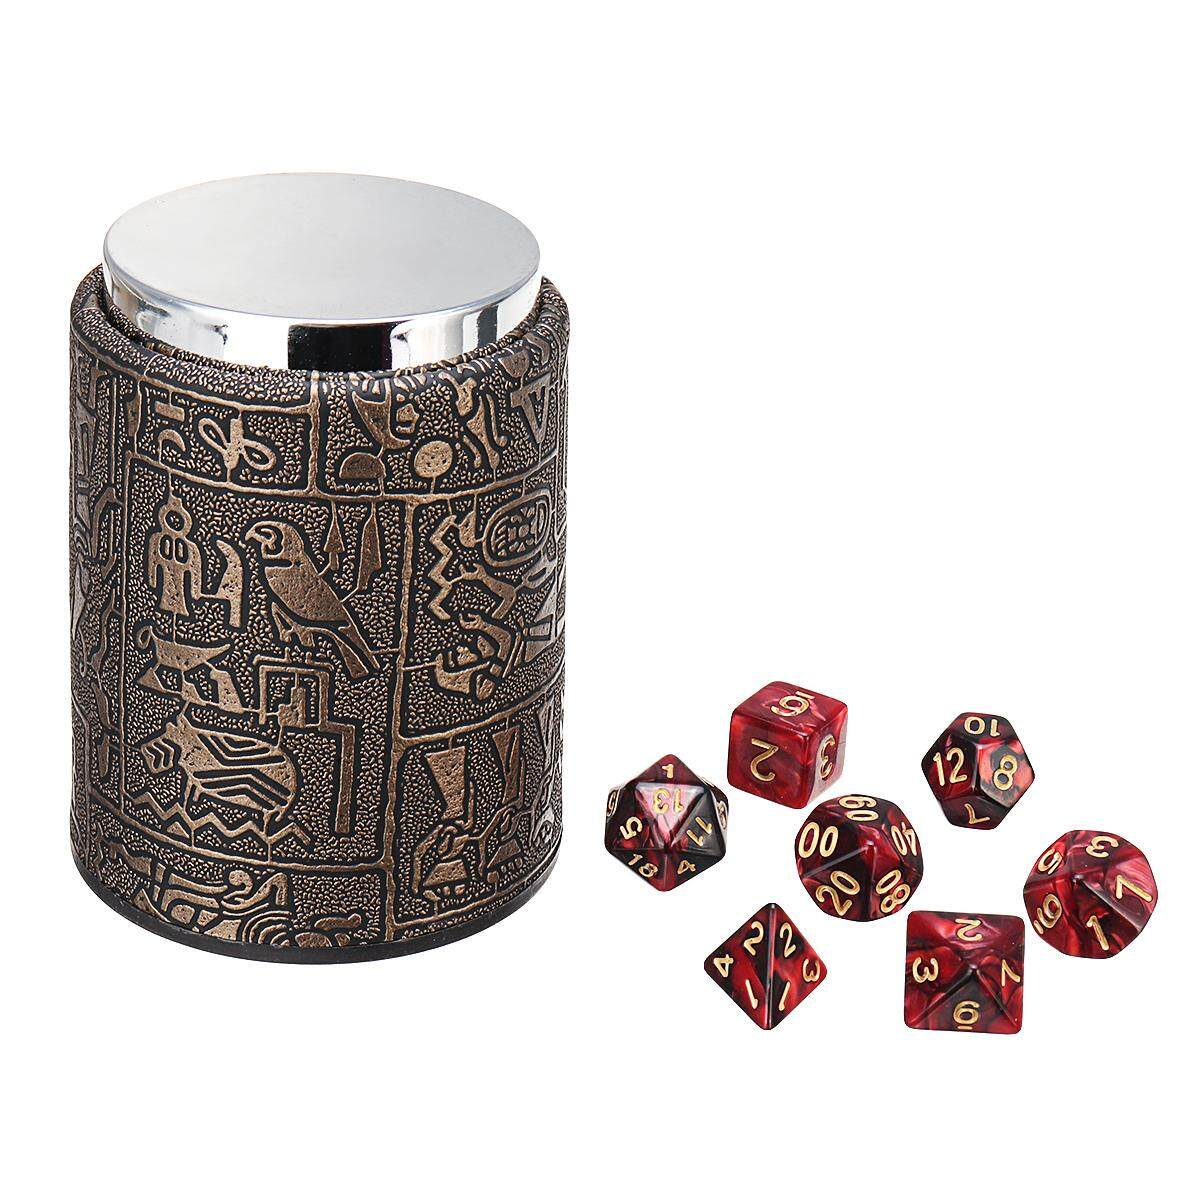 7-Die Polyhedral Dice For Dungeons And Dragons Dnd Rpg Mtg+dice Cup By Audew.